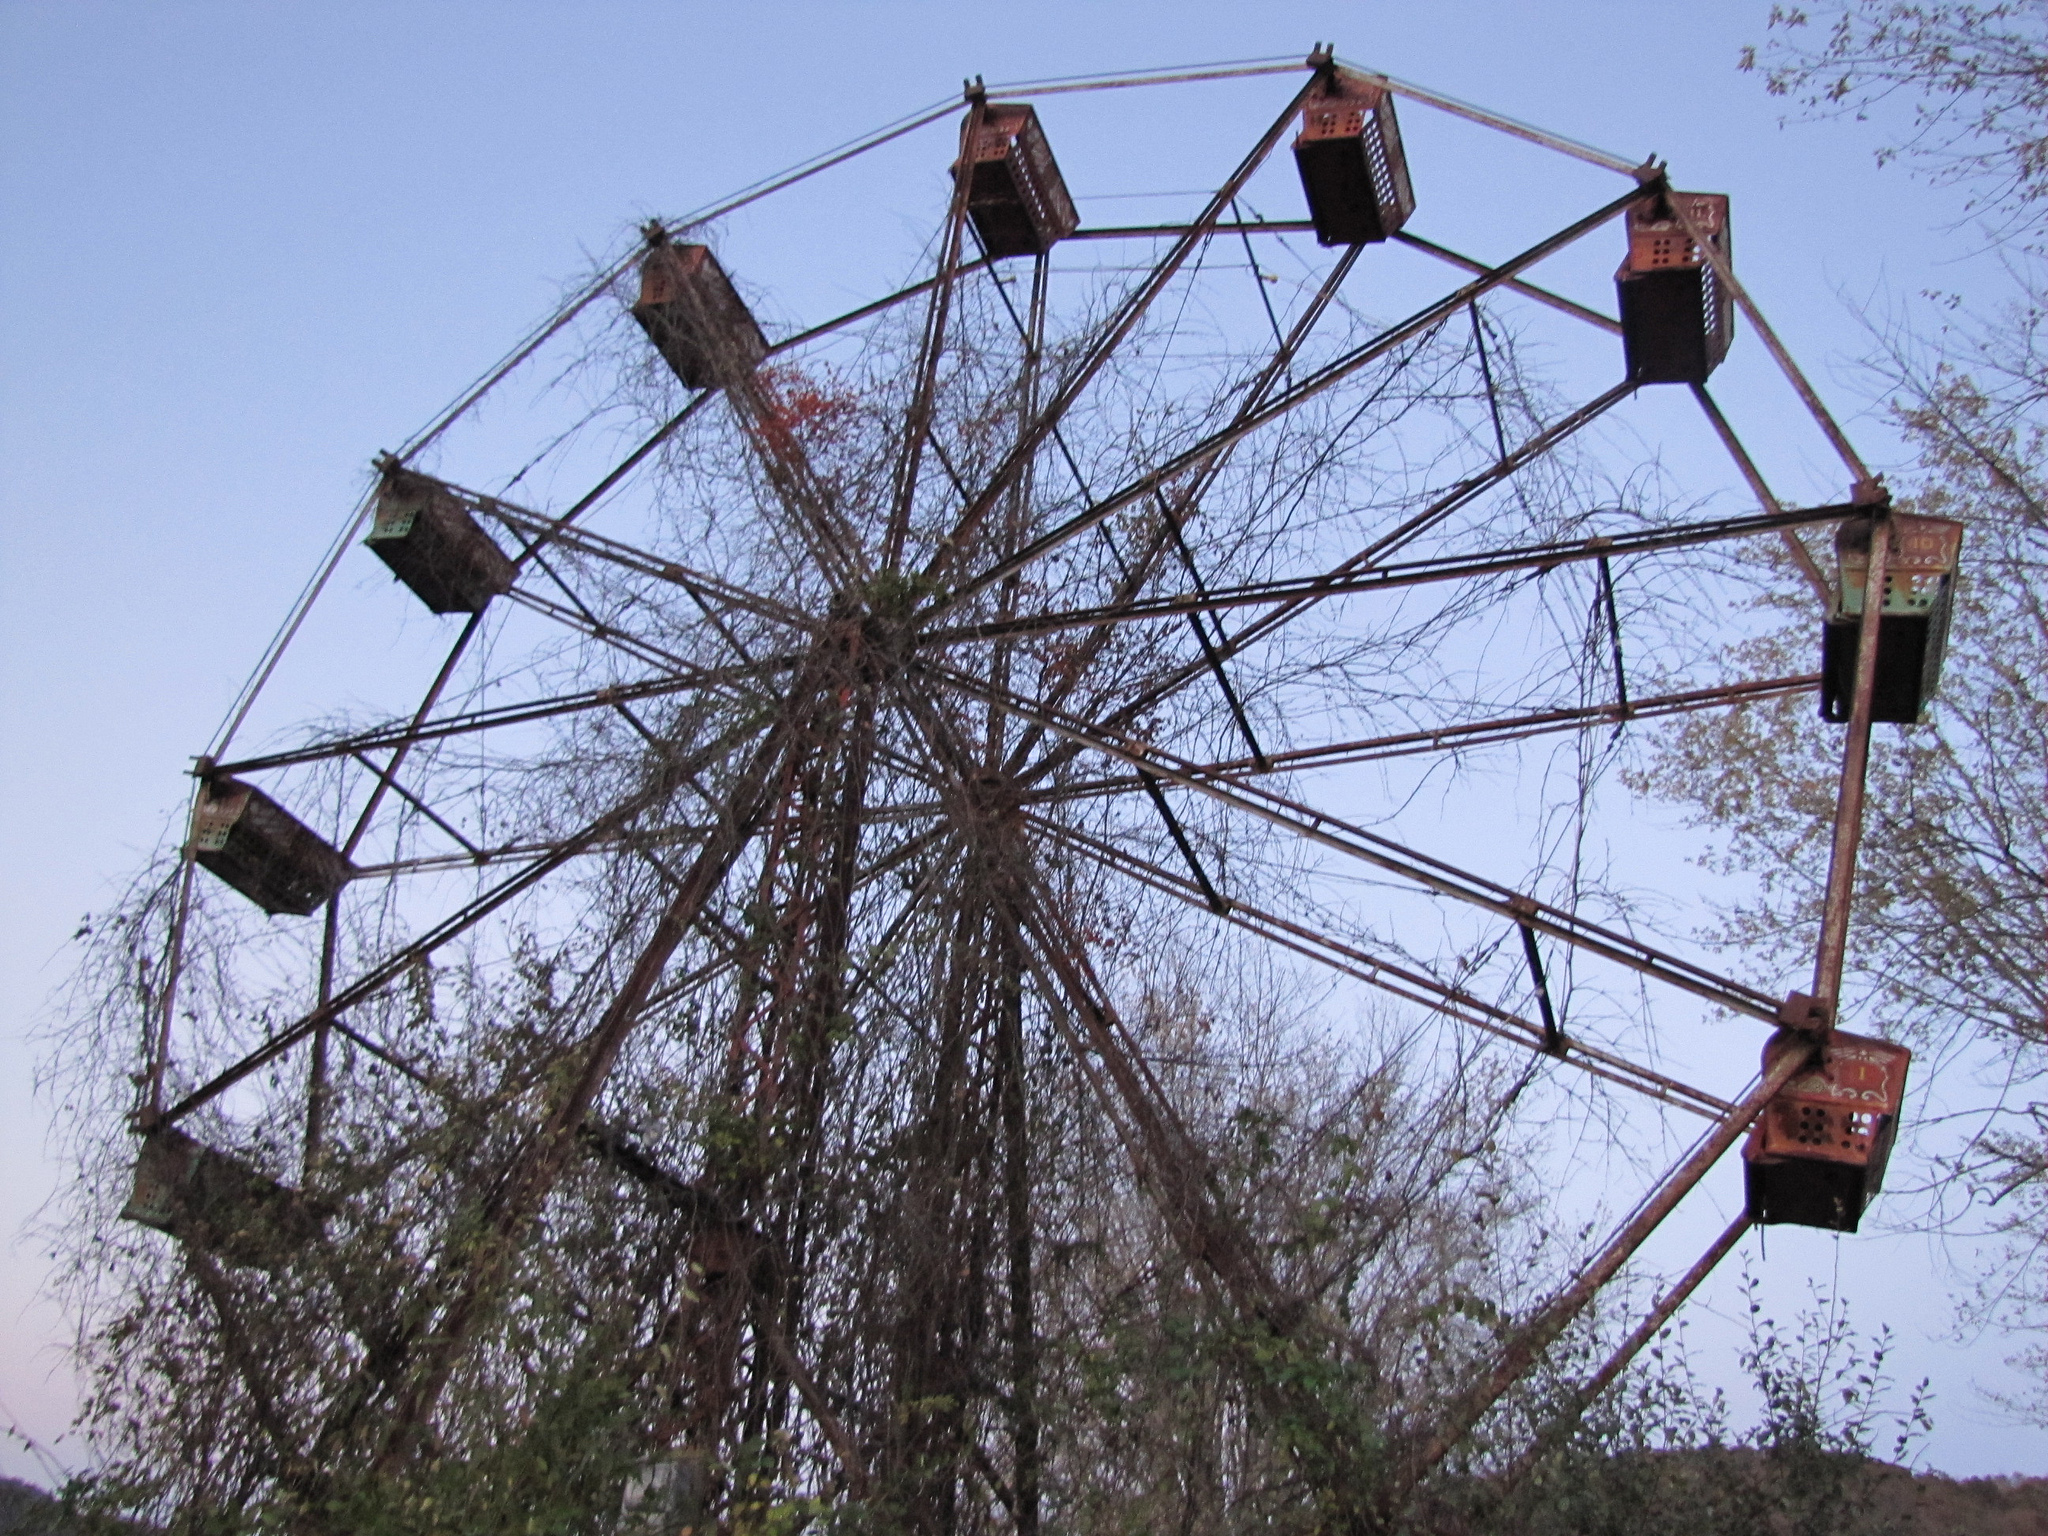 West Virginia S Creepy Abandoned Amusement Park